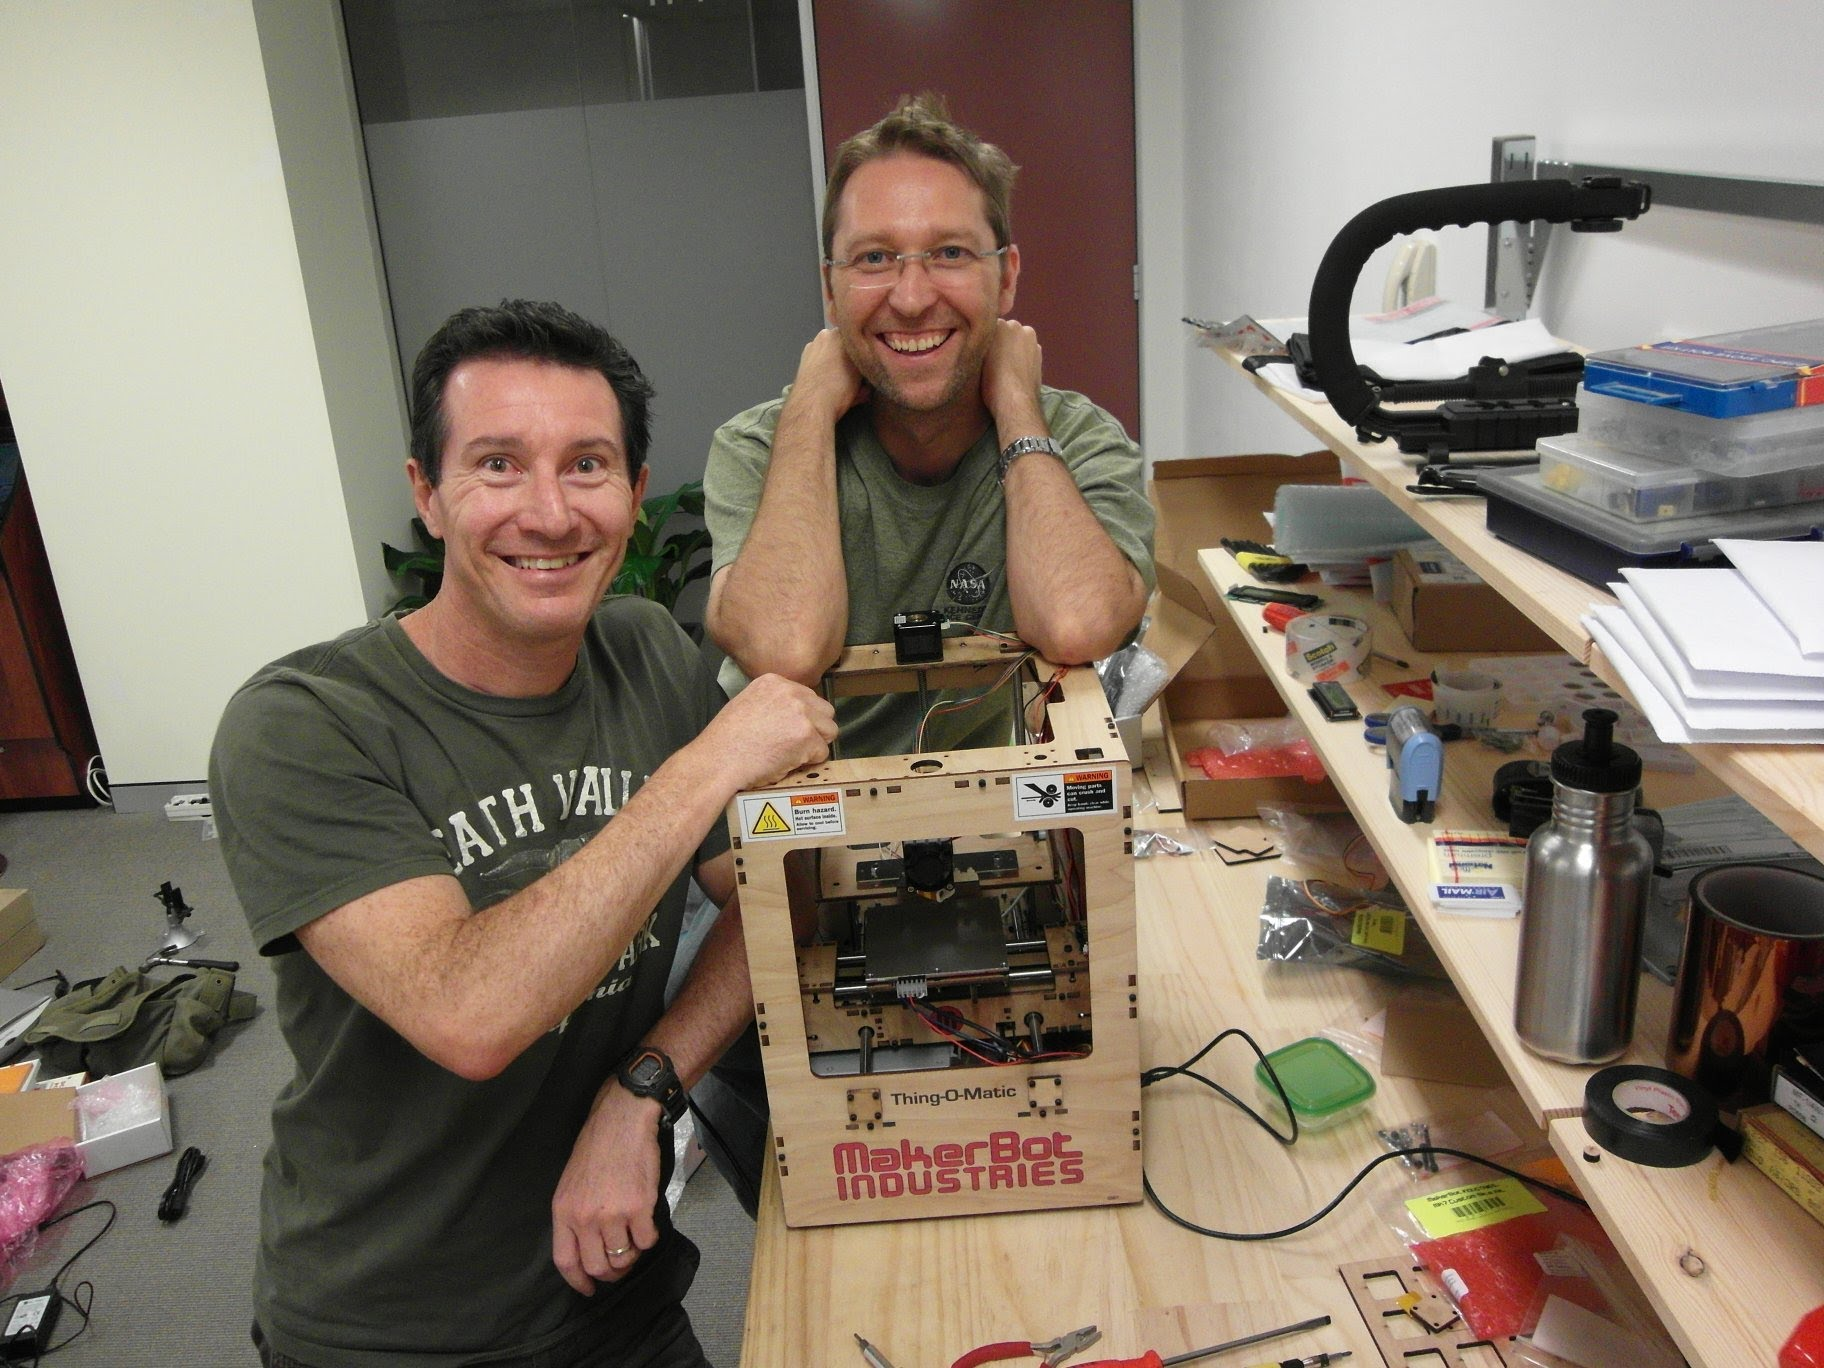 EEVblog #246 – Makerbot Thing-O-Matic Time Lapse Build